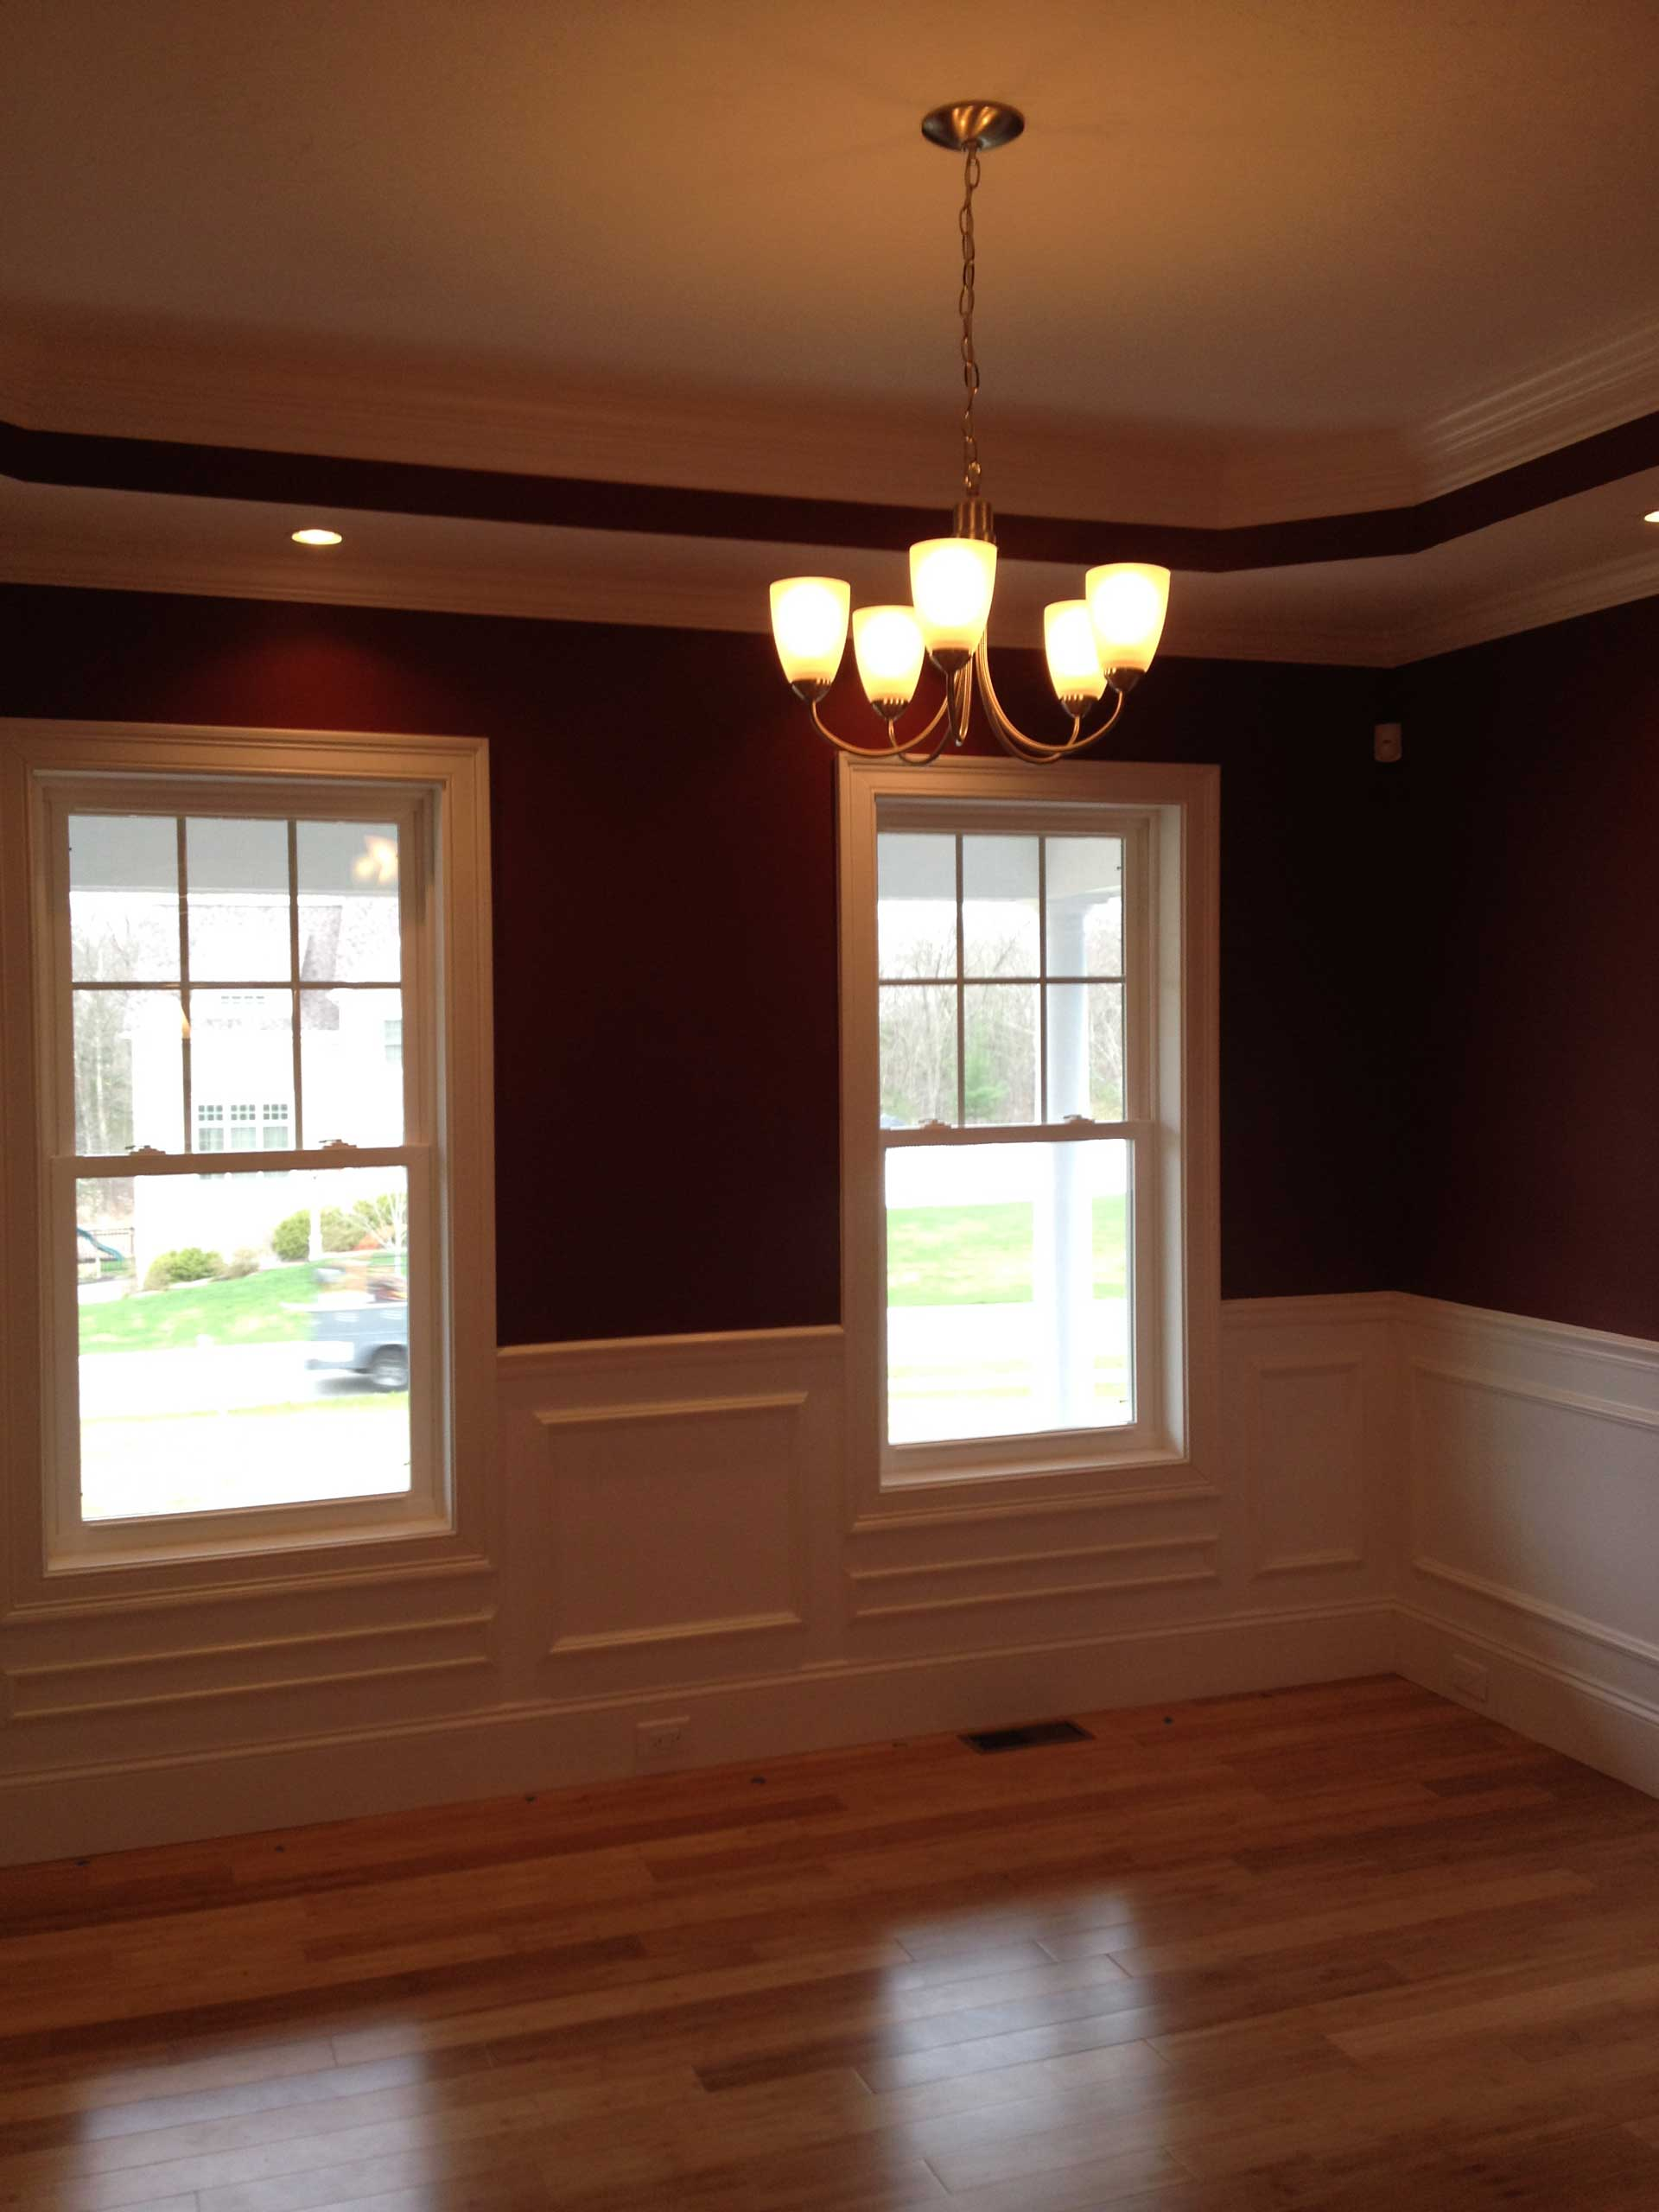 who is king phillip Find apartments for rent at king phillip apartments from $1,350 in raynham, ma king phillip apartments has rentals available ranging from 912-1200 sq ft.